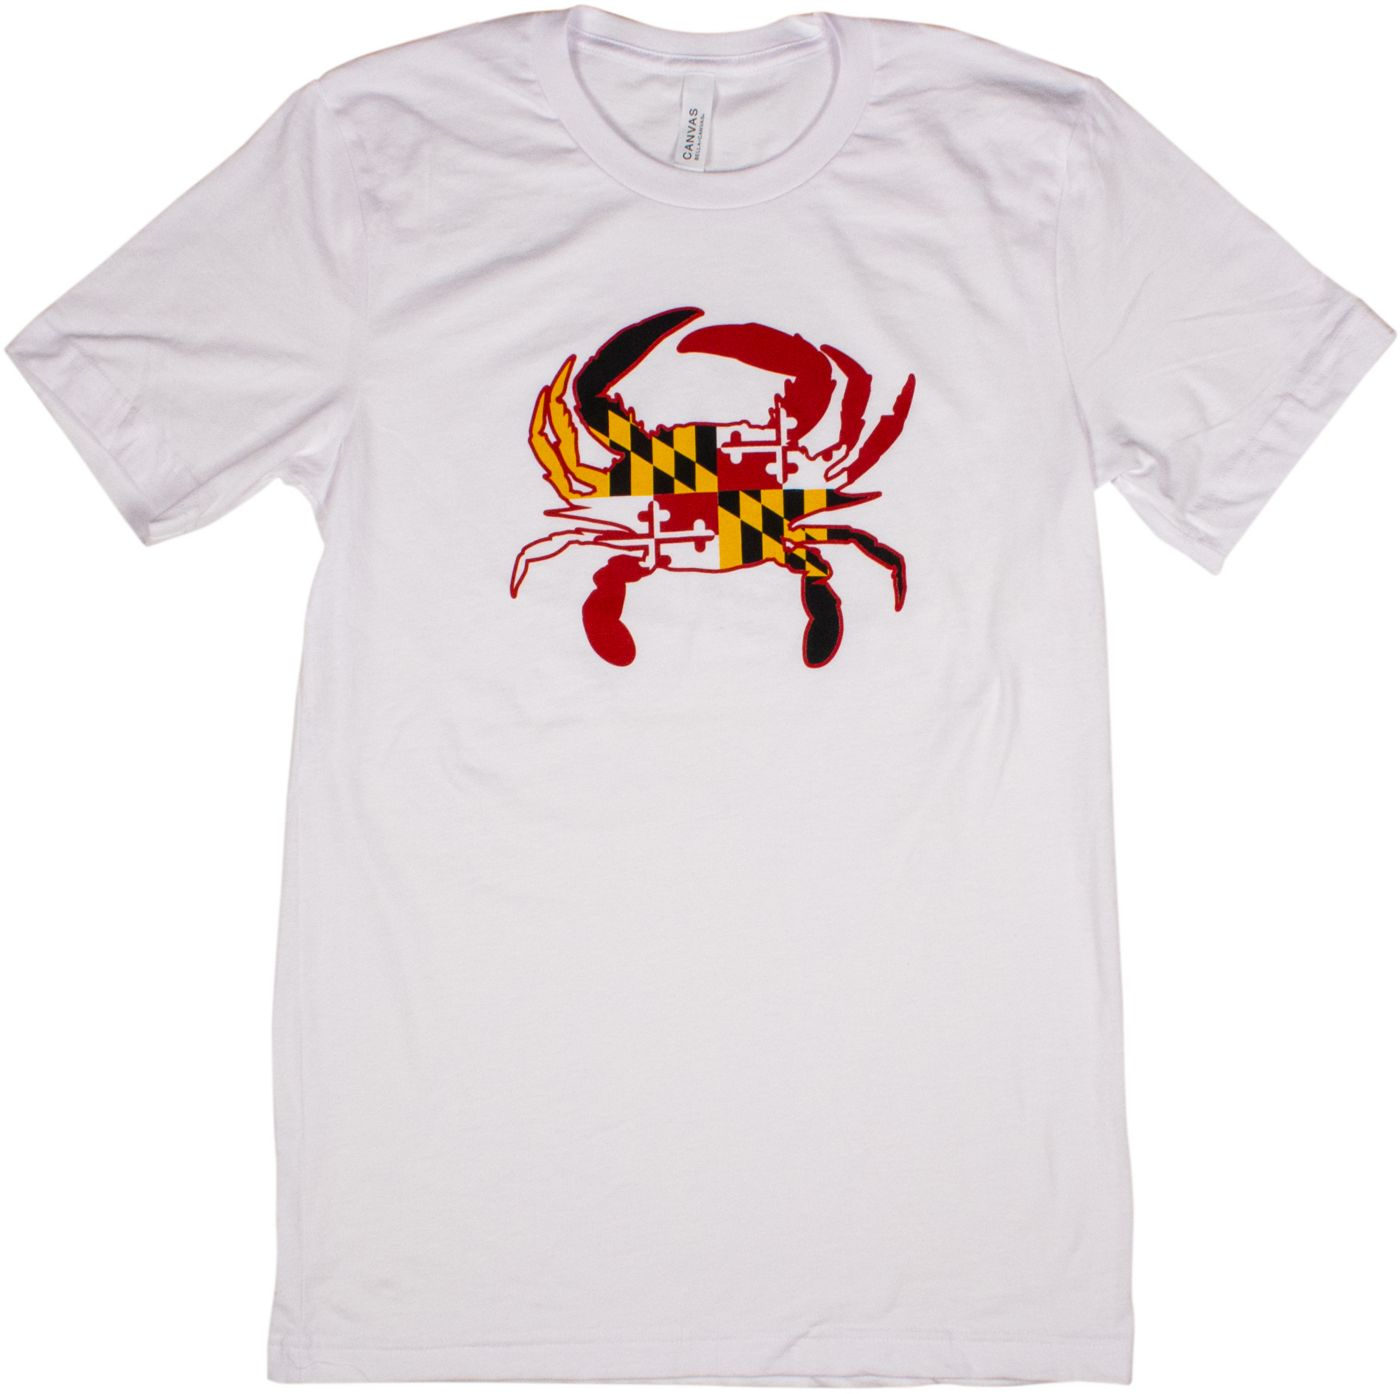 Home State Apparel Men's Maryland Crab With Flag Short Sleeve T-Shirt